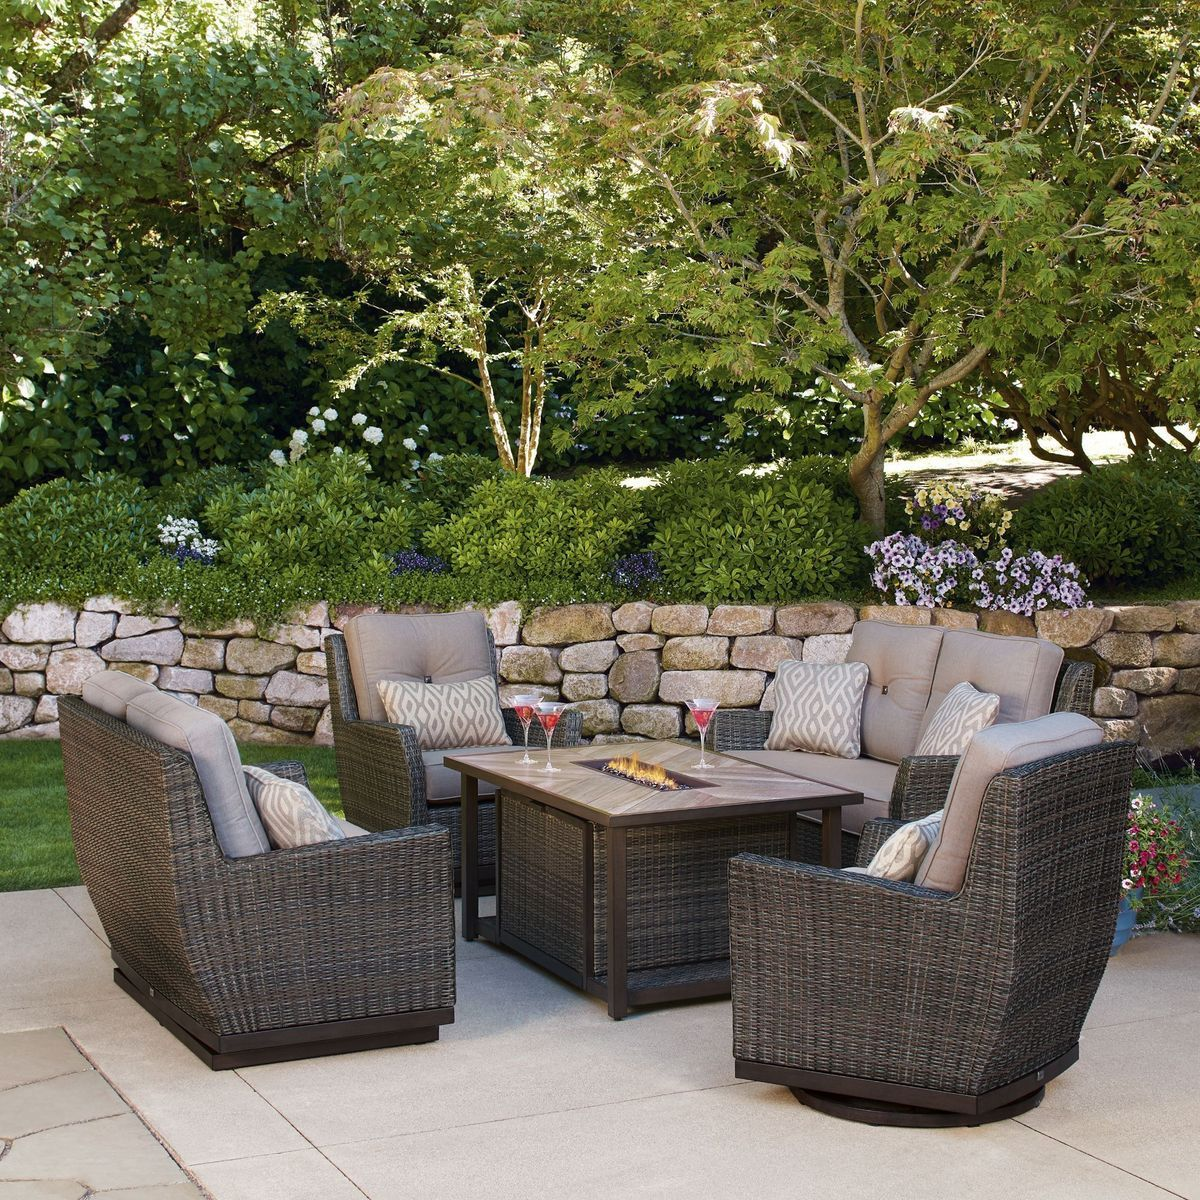 5 Piece Fire Chat Set In 2020 Patio Outdoor Furniture Outdoor